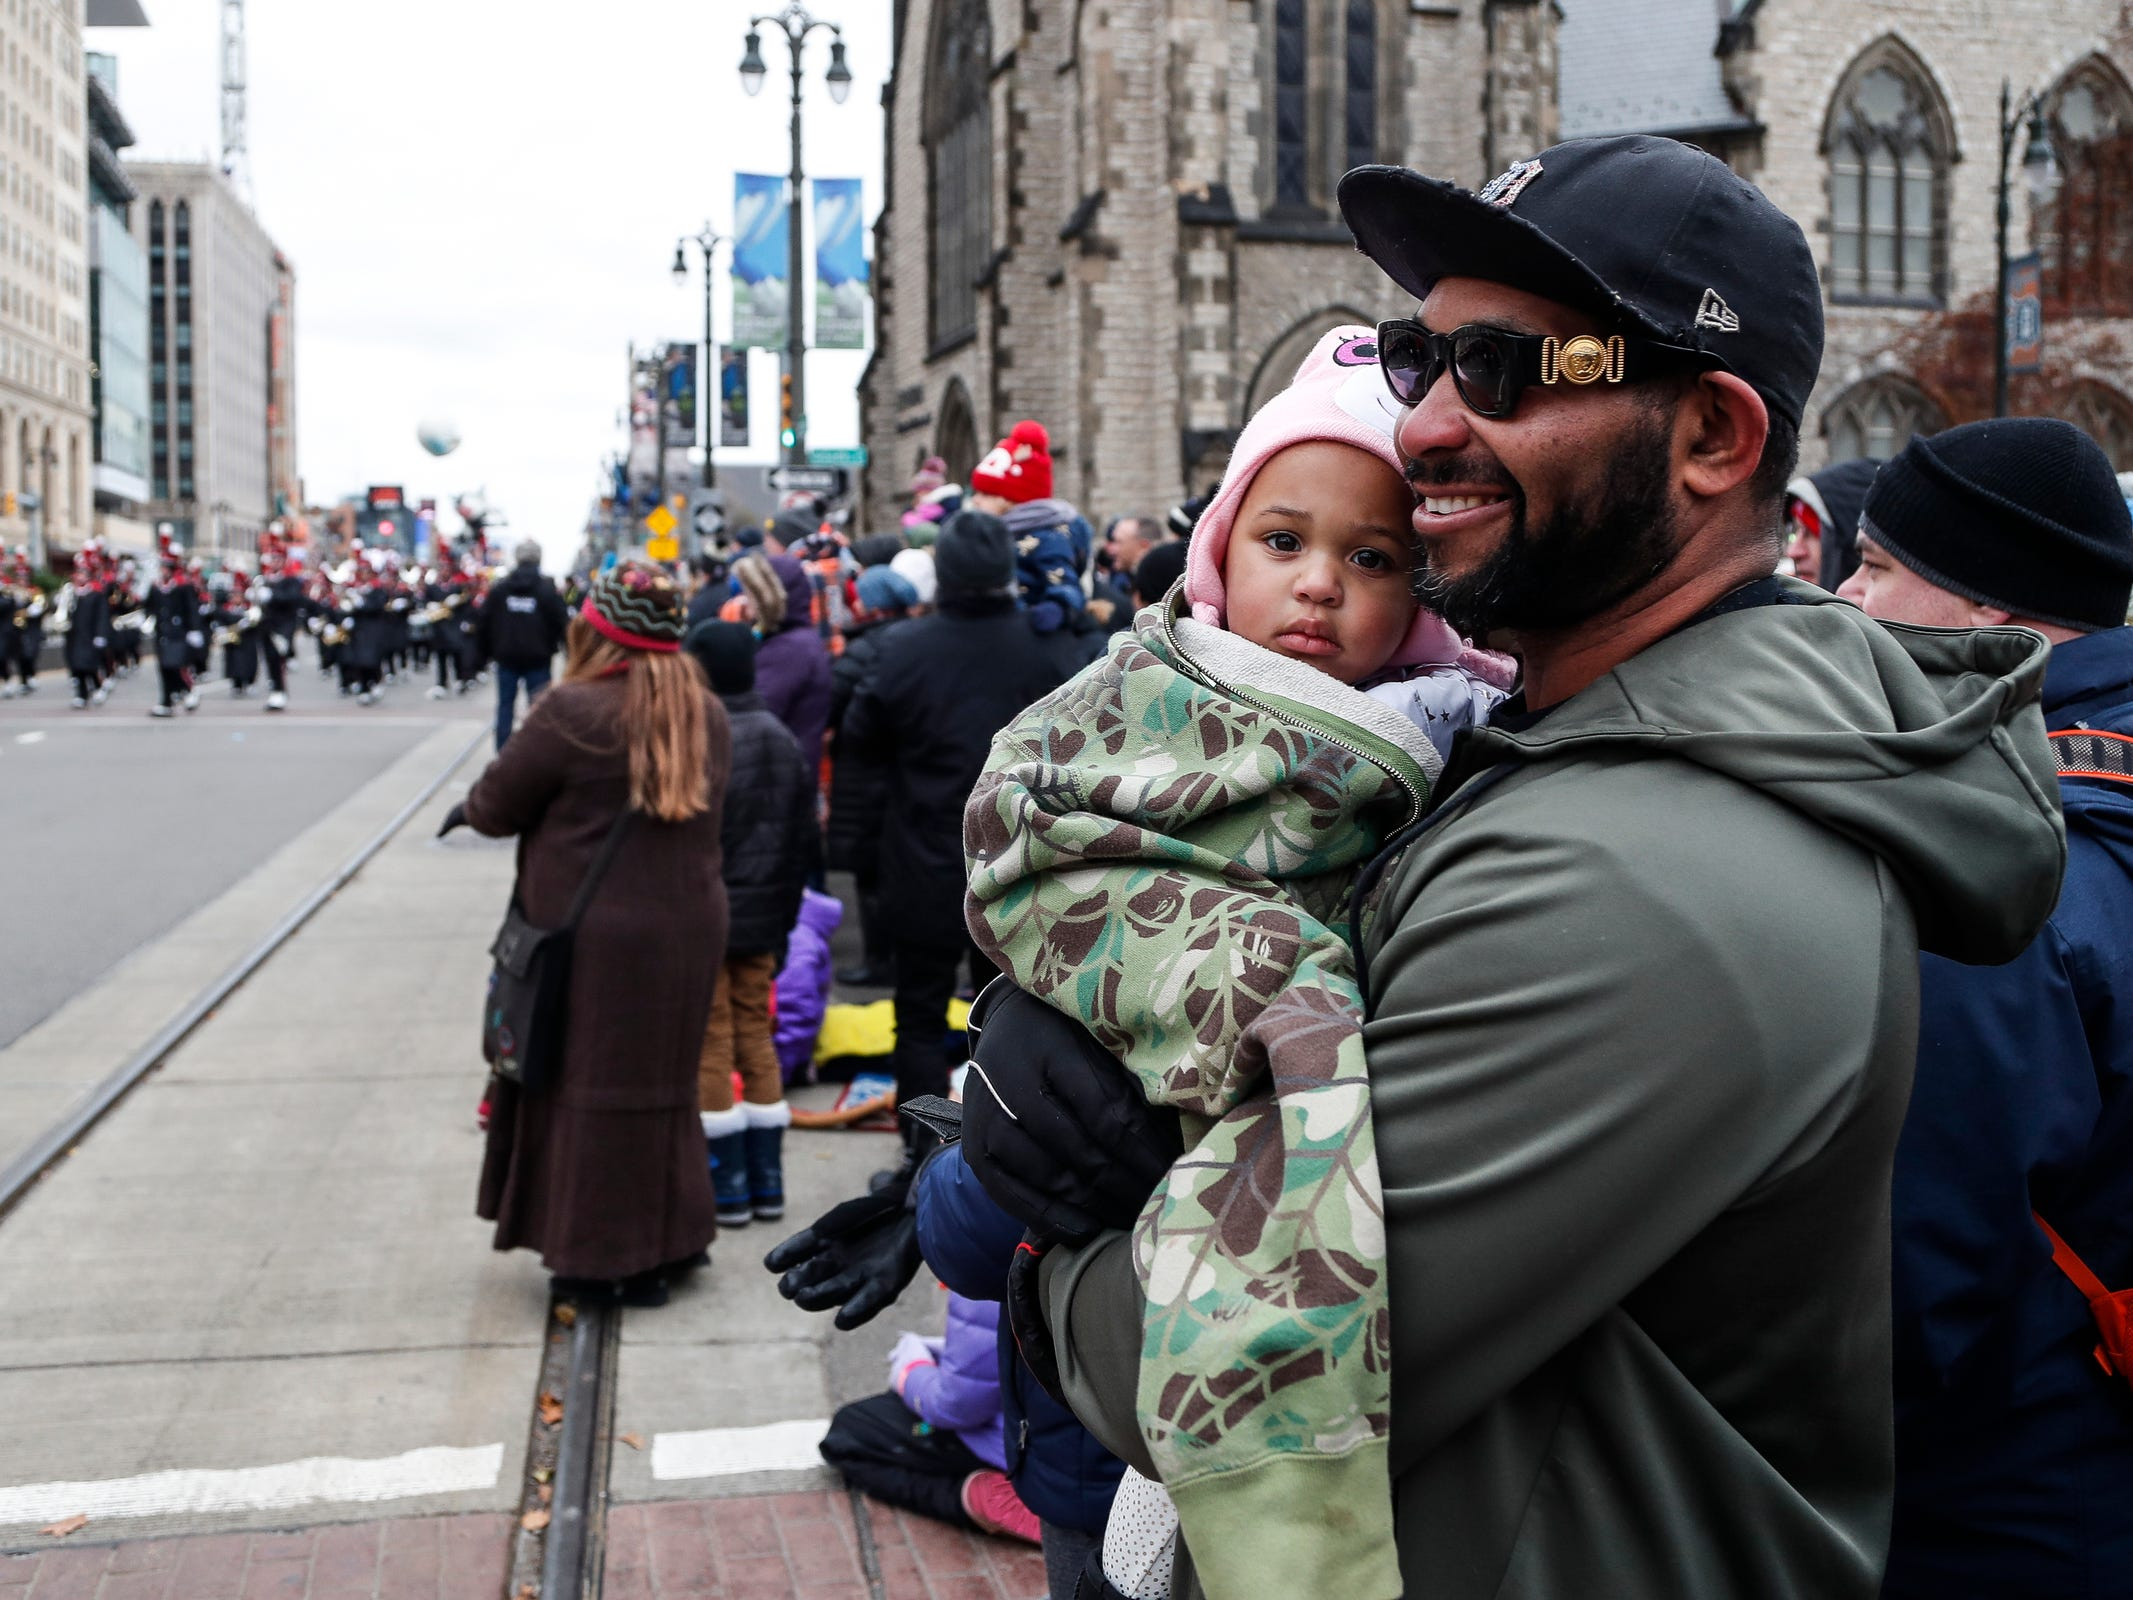 Mark Ephraim and his daughter Marie, 2, watch the parade on Woodward Avenue during the 92nd America's Thanksgiving Day Parade in Detroit, Thursday, Nov. 22, 2018.